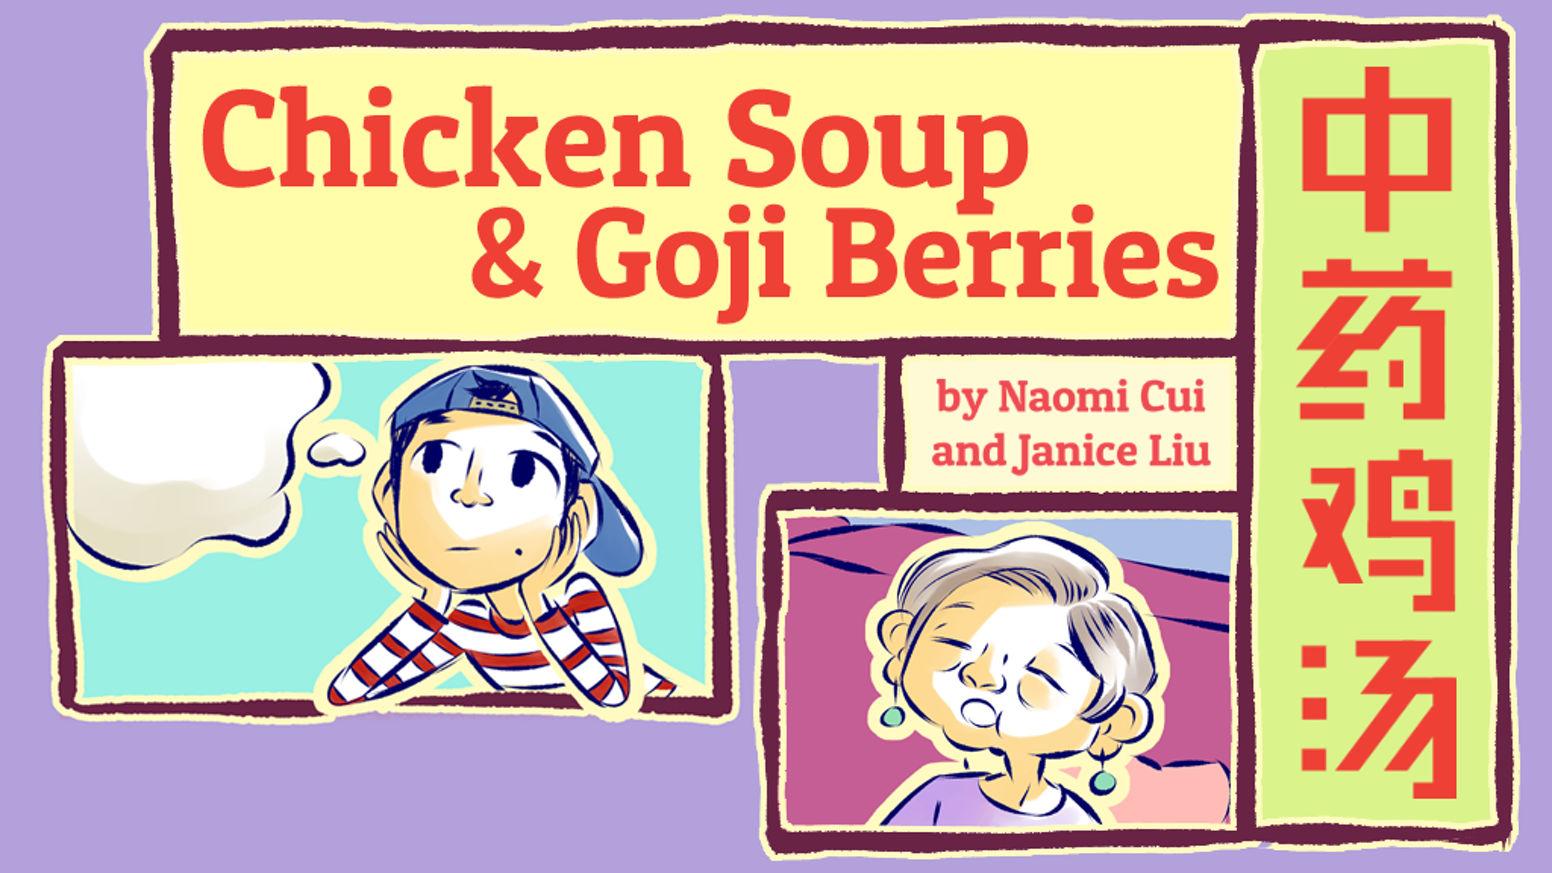 A Bilingual Graphic Novel About Migration, Family, and Food by Naomi Cui and Janice Liu